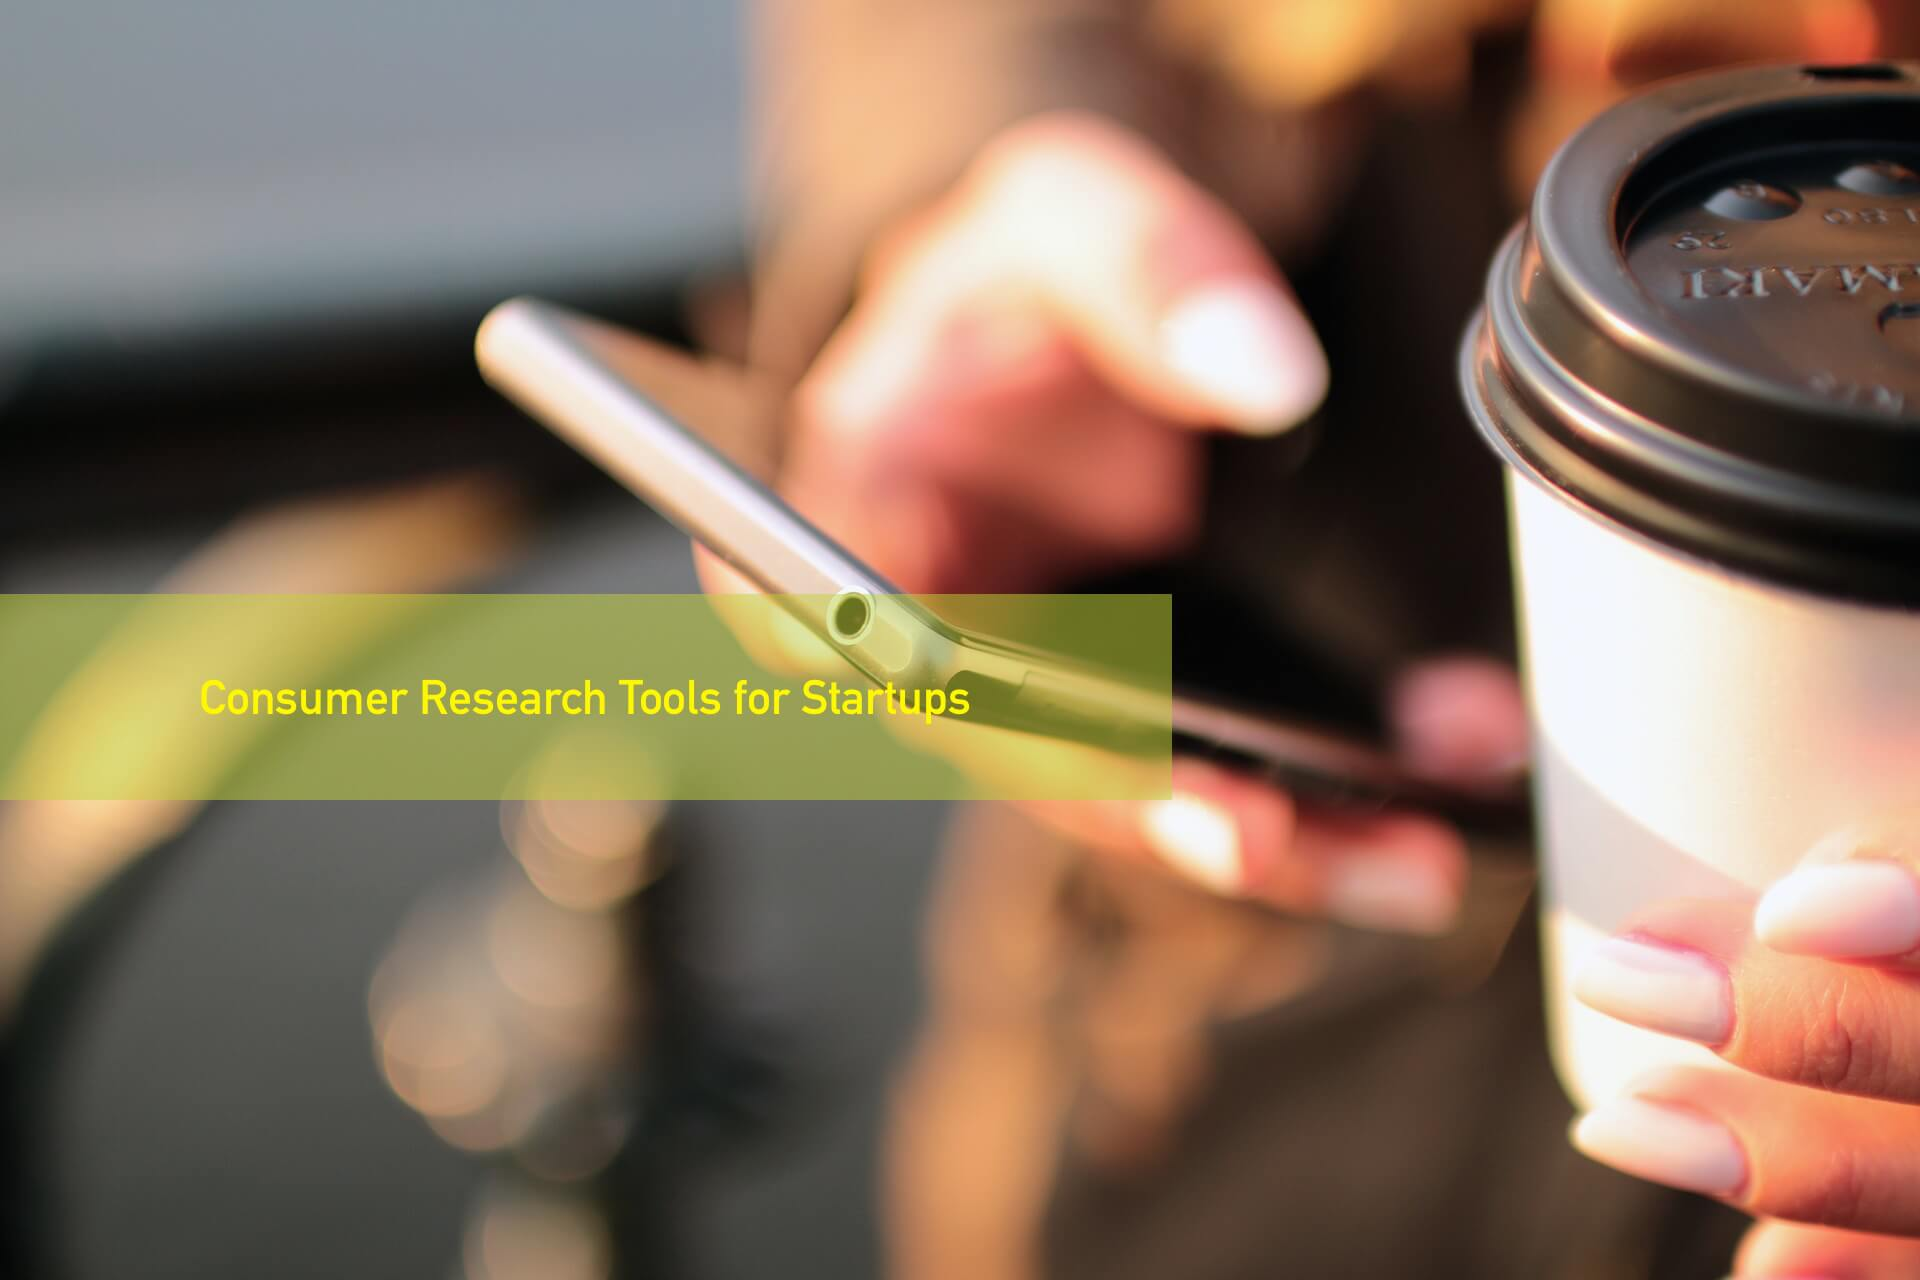 Consumer Research Tools for Startups